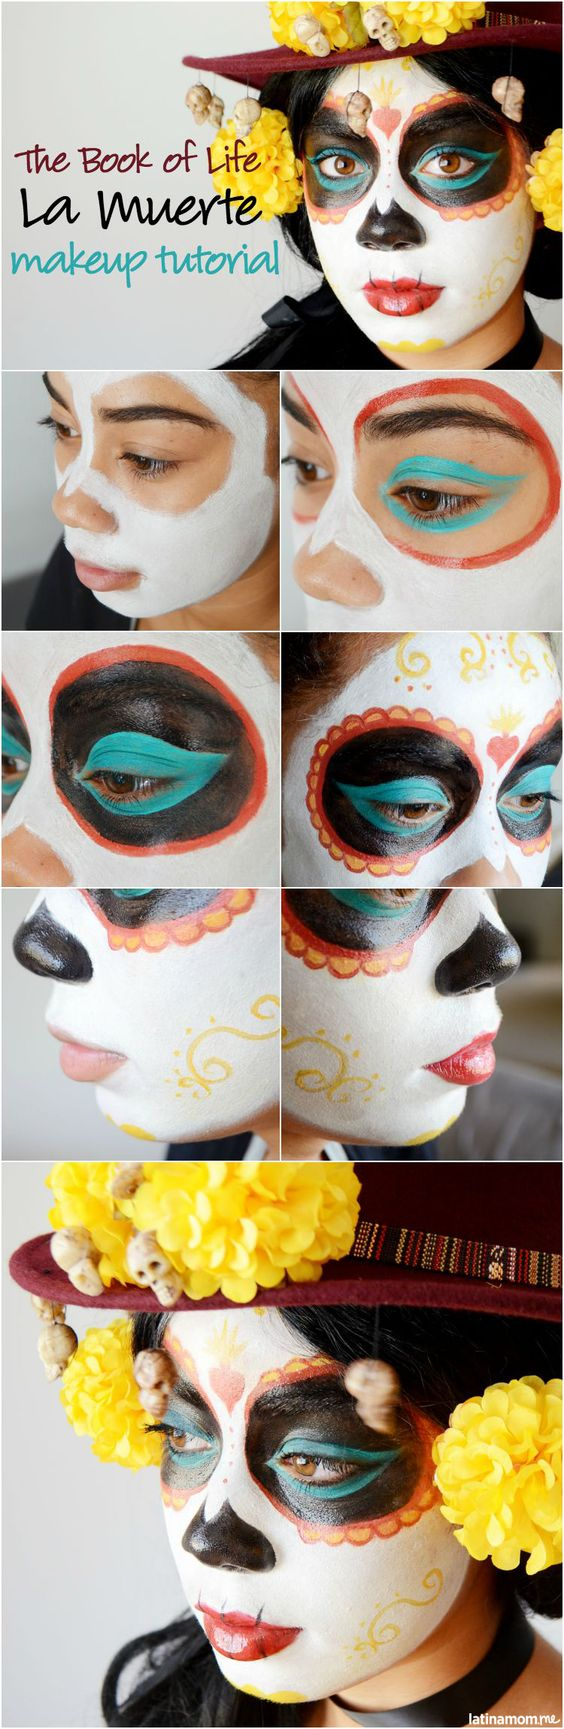 La Muerte-Inspired Makeup Tutorial - Latina Mom Tips & Advice | mom.me by TheArtMuse #LatinaBloggers